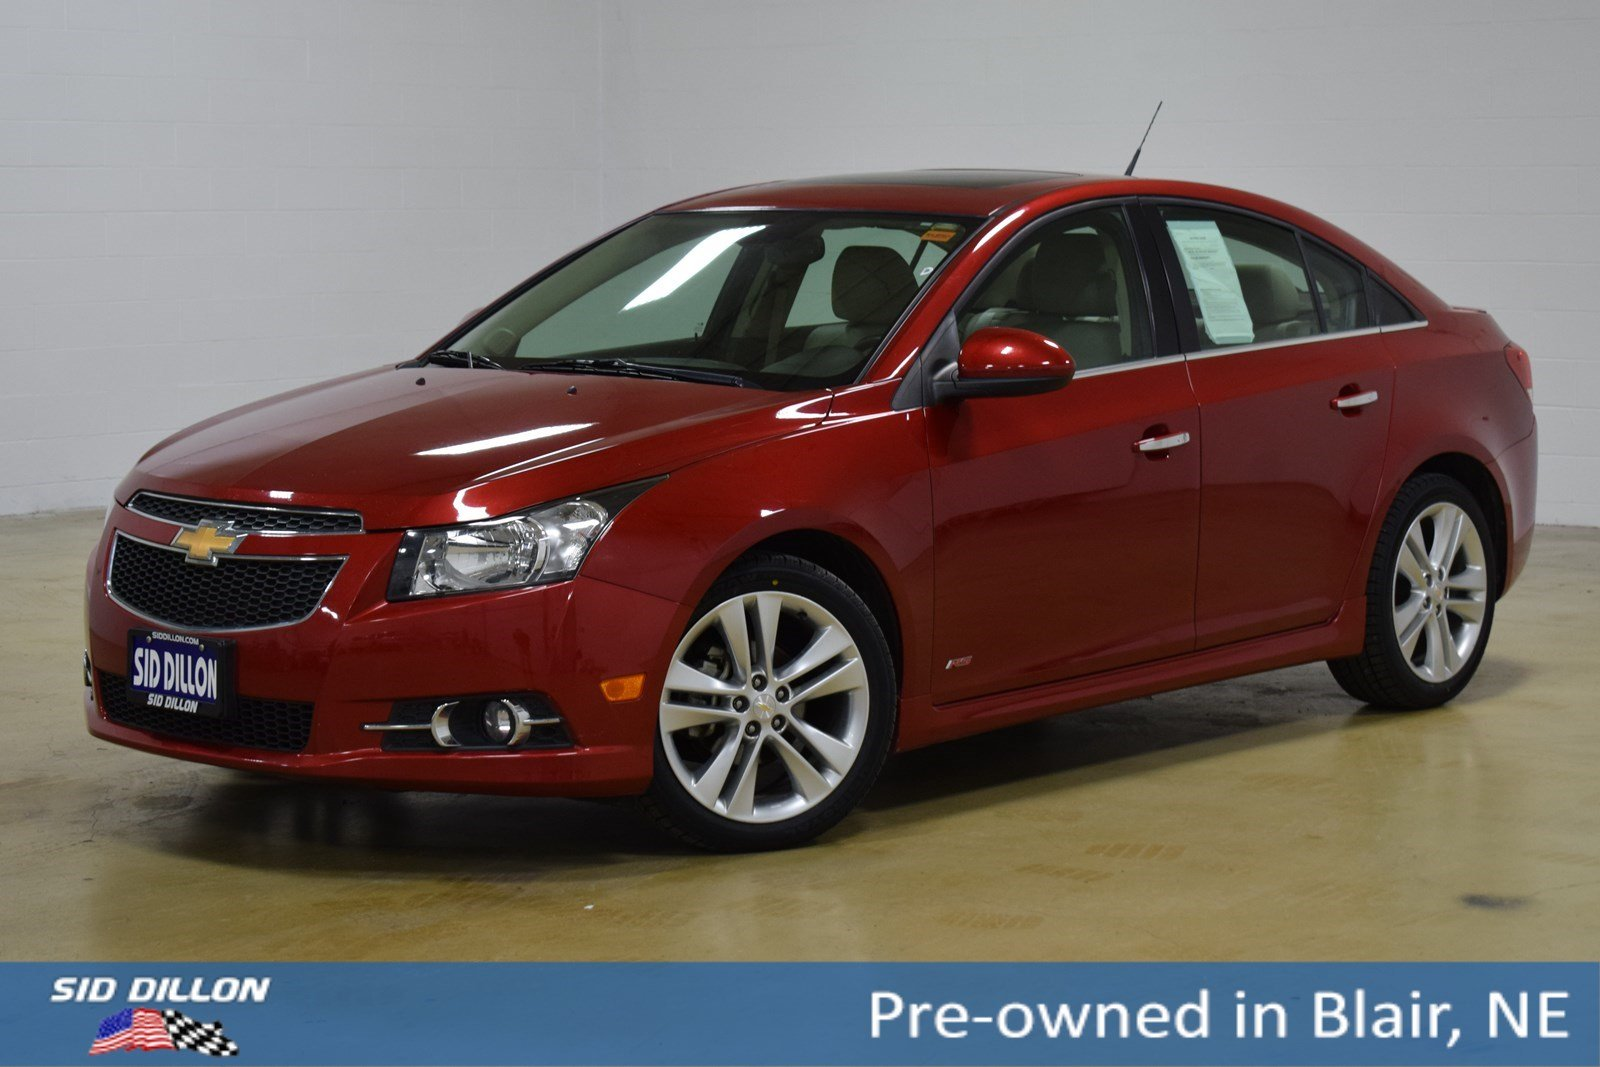 Chevrolet Cruze Repair Manual: Wheel Stud Replacement